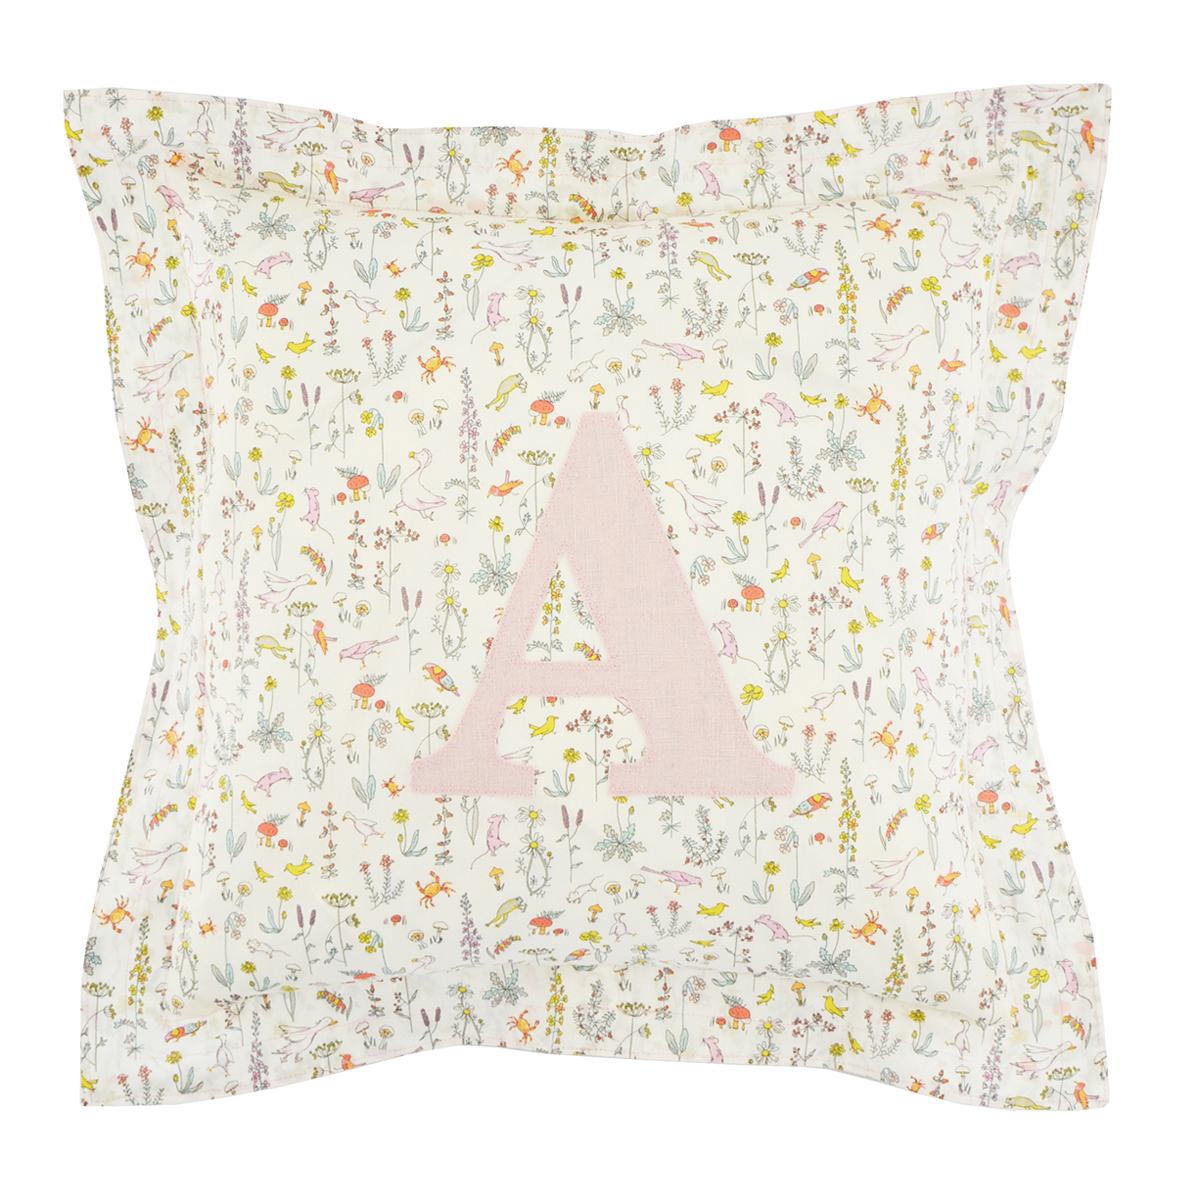 Coco & Wolf Liberty Fabric Personalized Pillow – Theo Pink